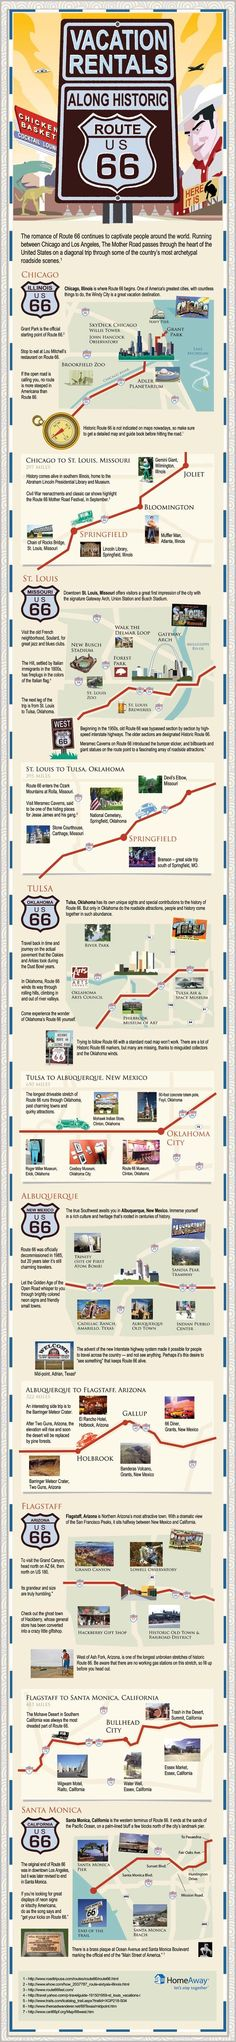 Things to Do and Vacation Rentals Along Historic Route 66 - An Infographic from HomeAway Travel Ideas